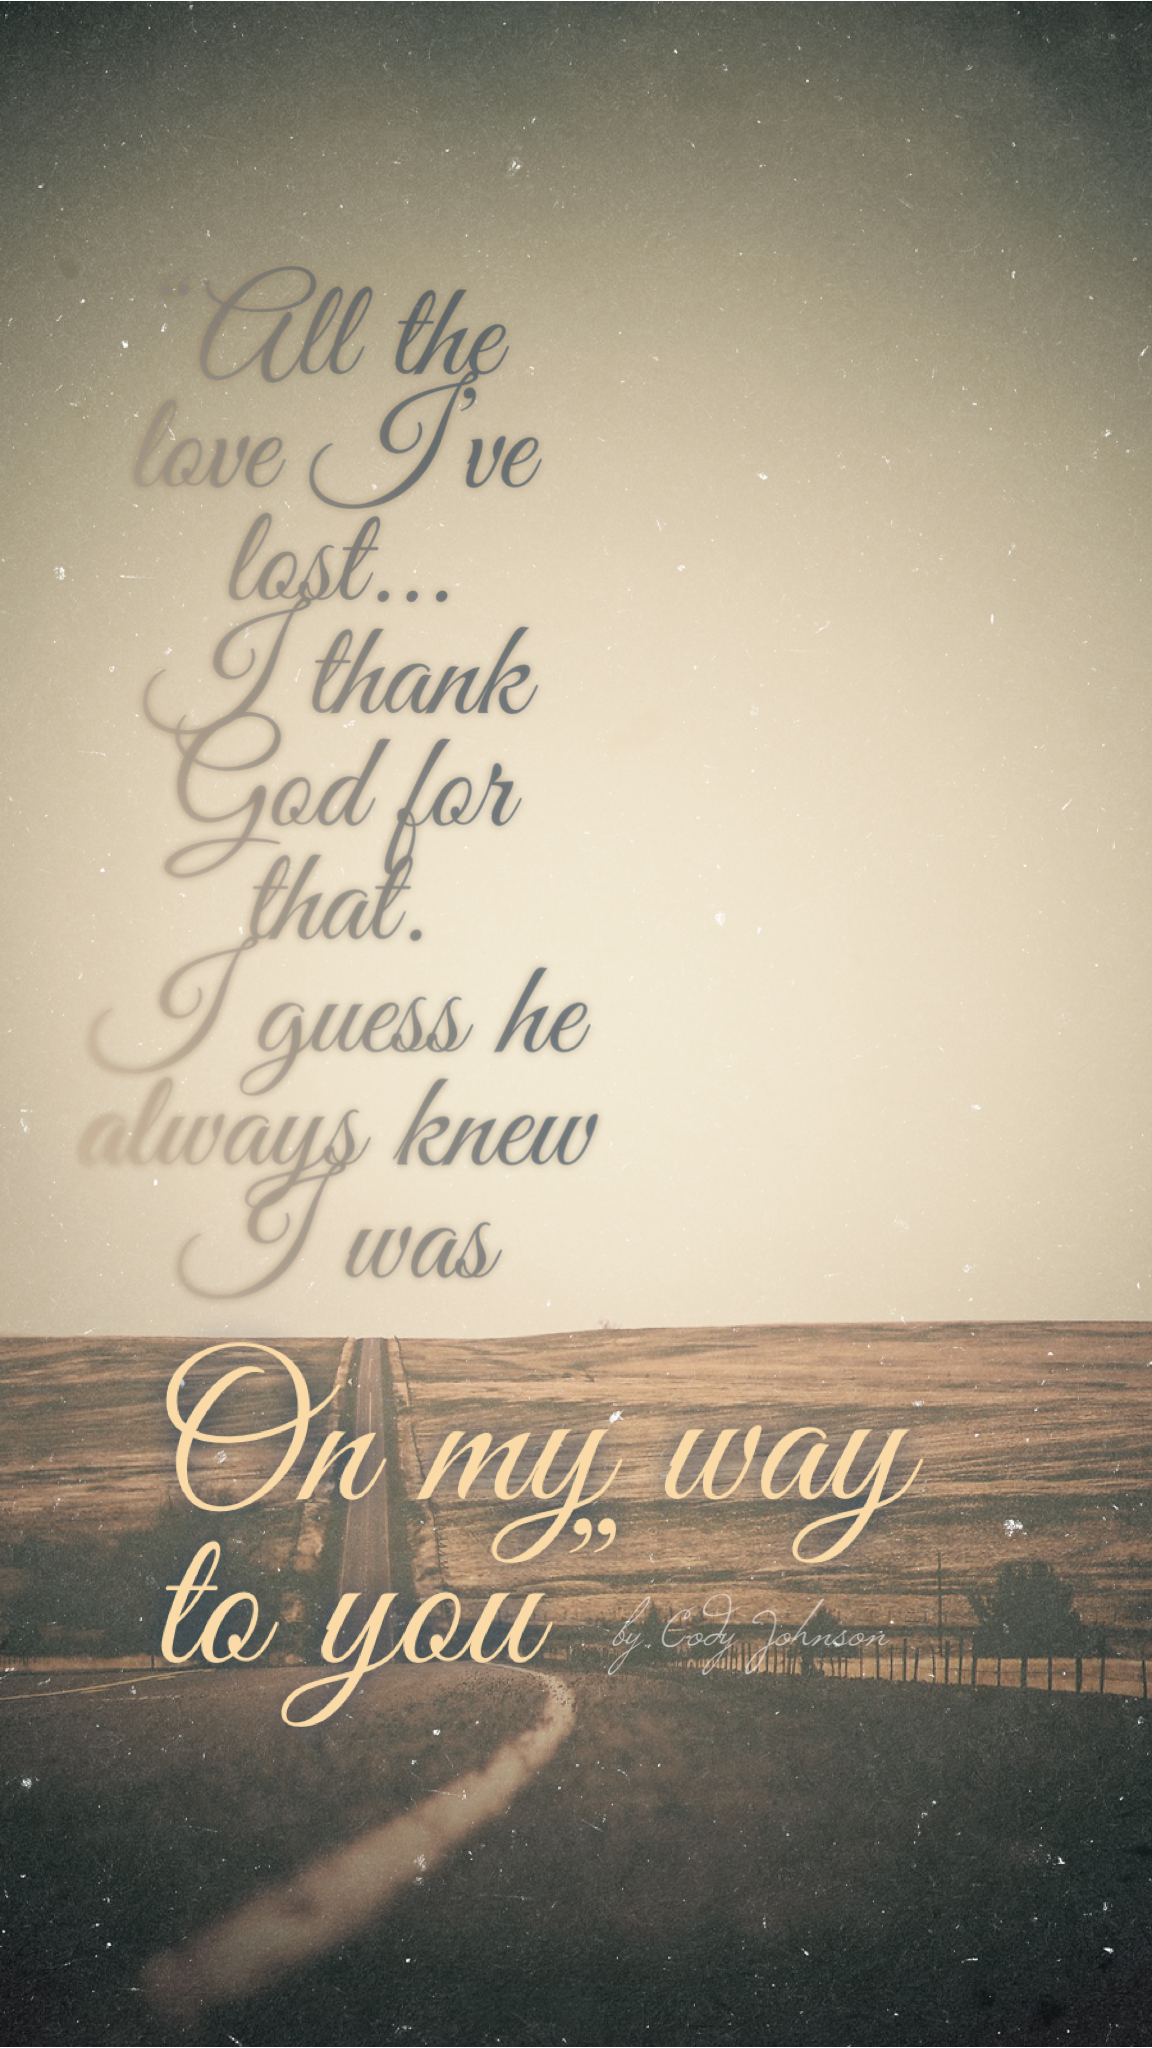 On My Way To You by Cody Johnson | Country love songs ...